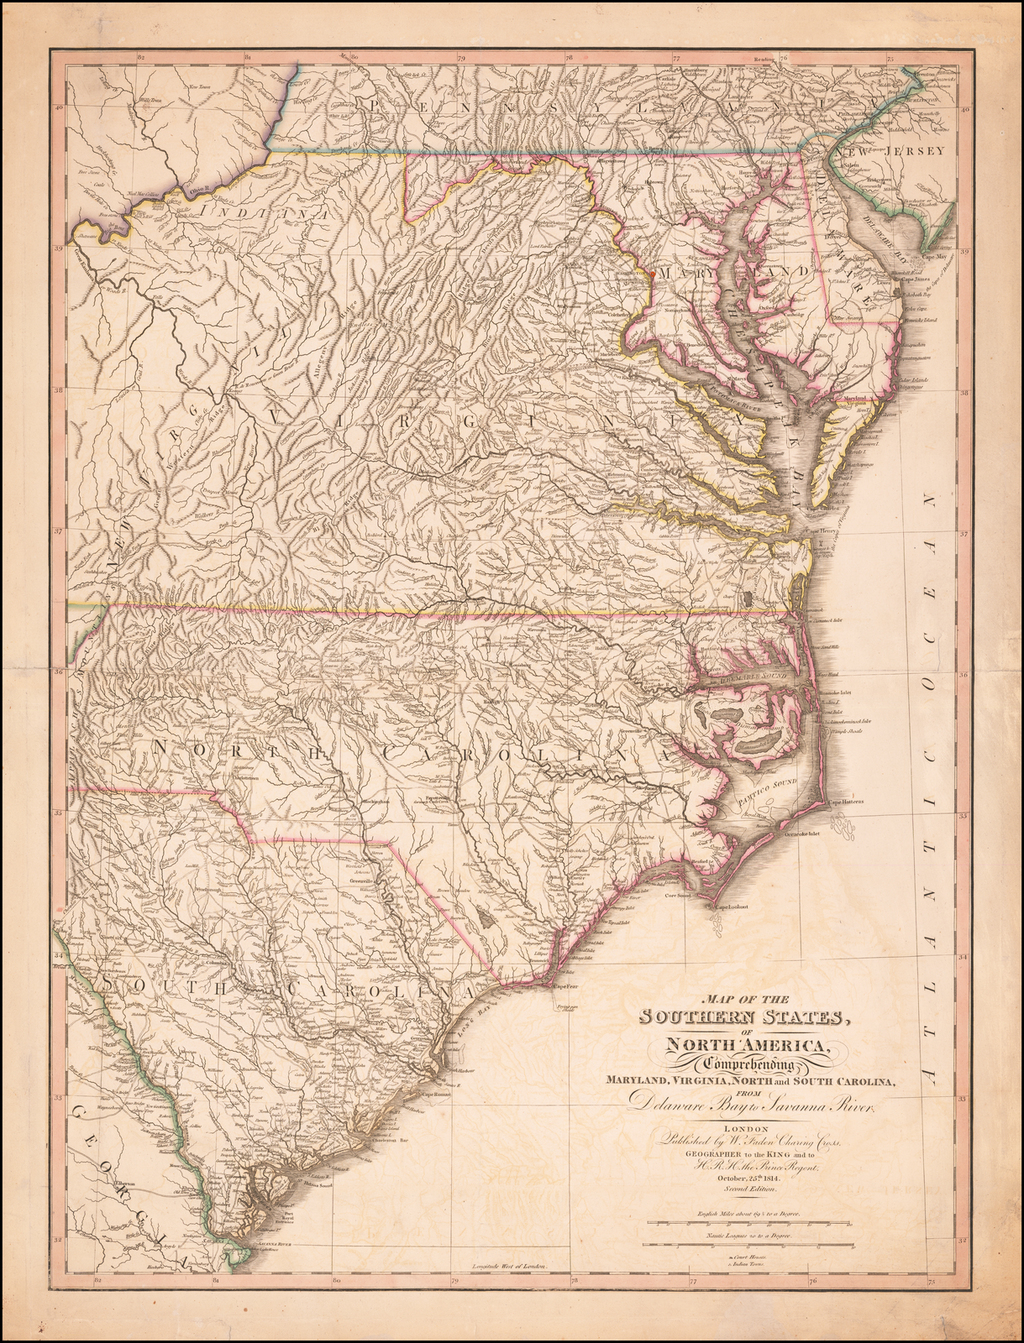 Map of the Southern States, of North America, Comprehending Maryland, Virginia, North and South Carolina, From Delaware Bay to Savanna River. . . . October 25th, 1814. . . . By William Faden